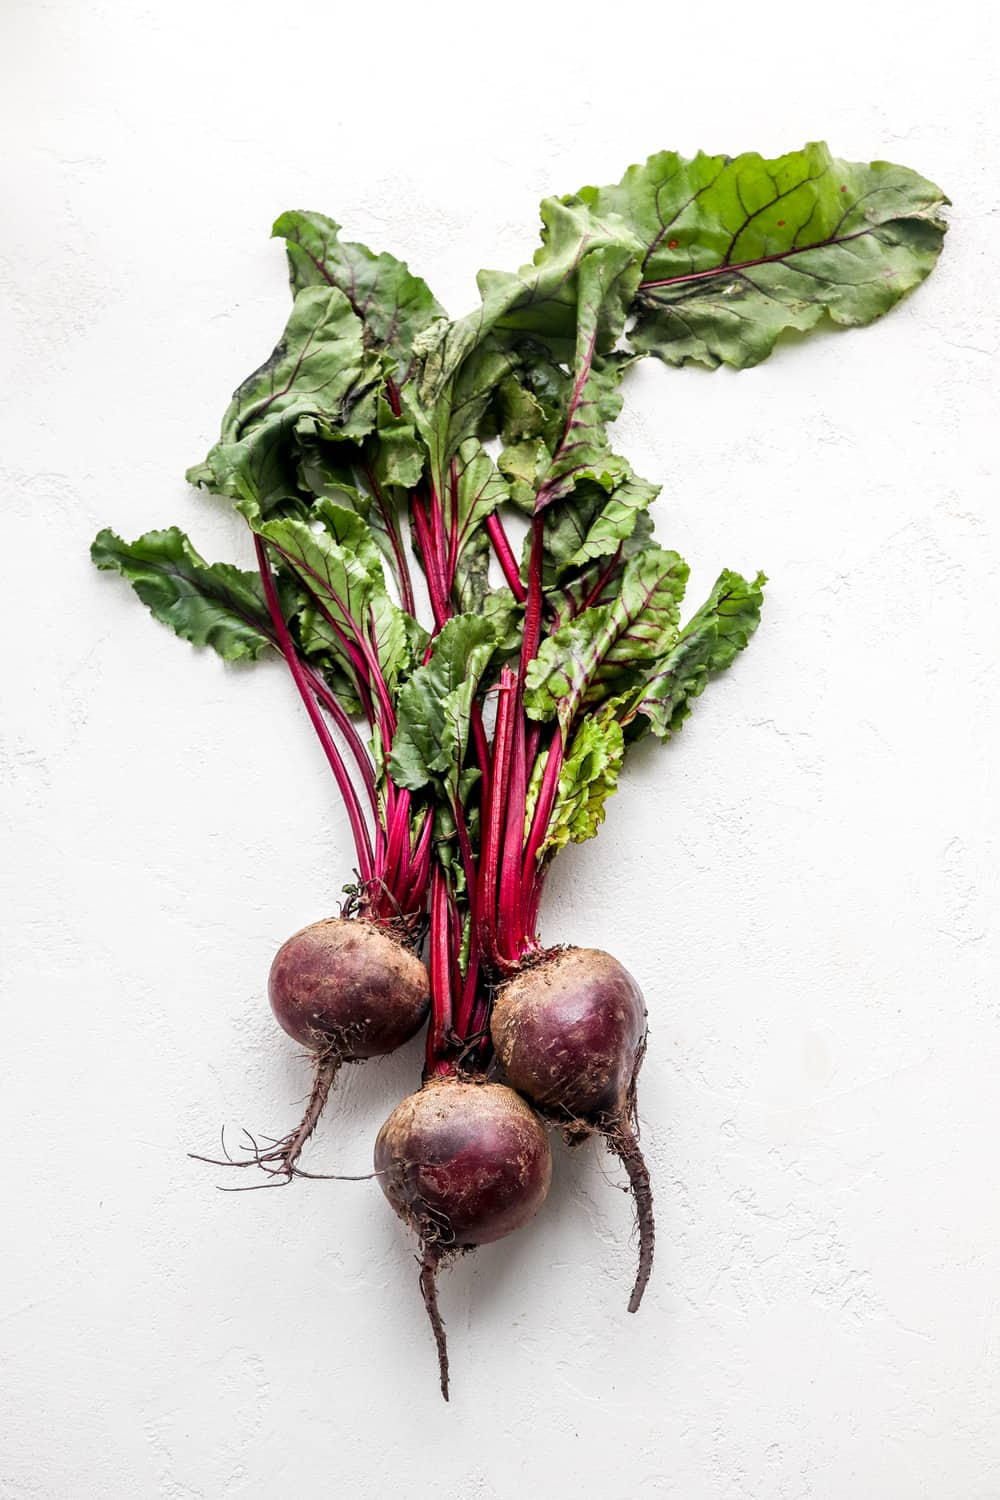 Bunch of whole beets with beet greens attached on a white surface.